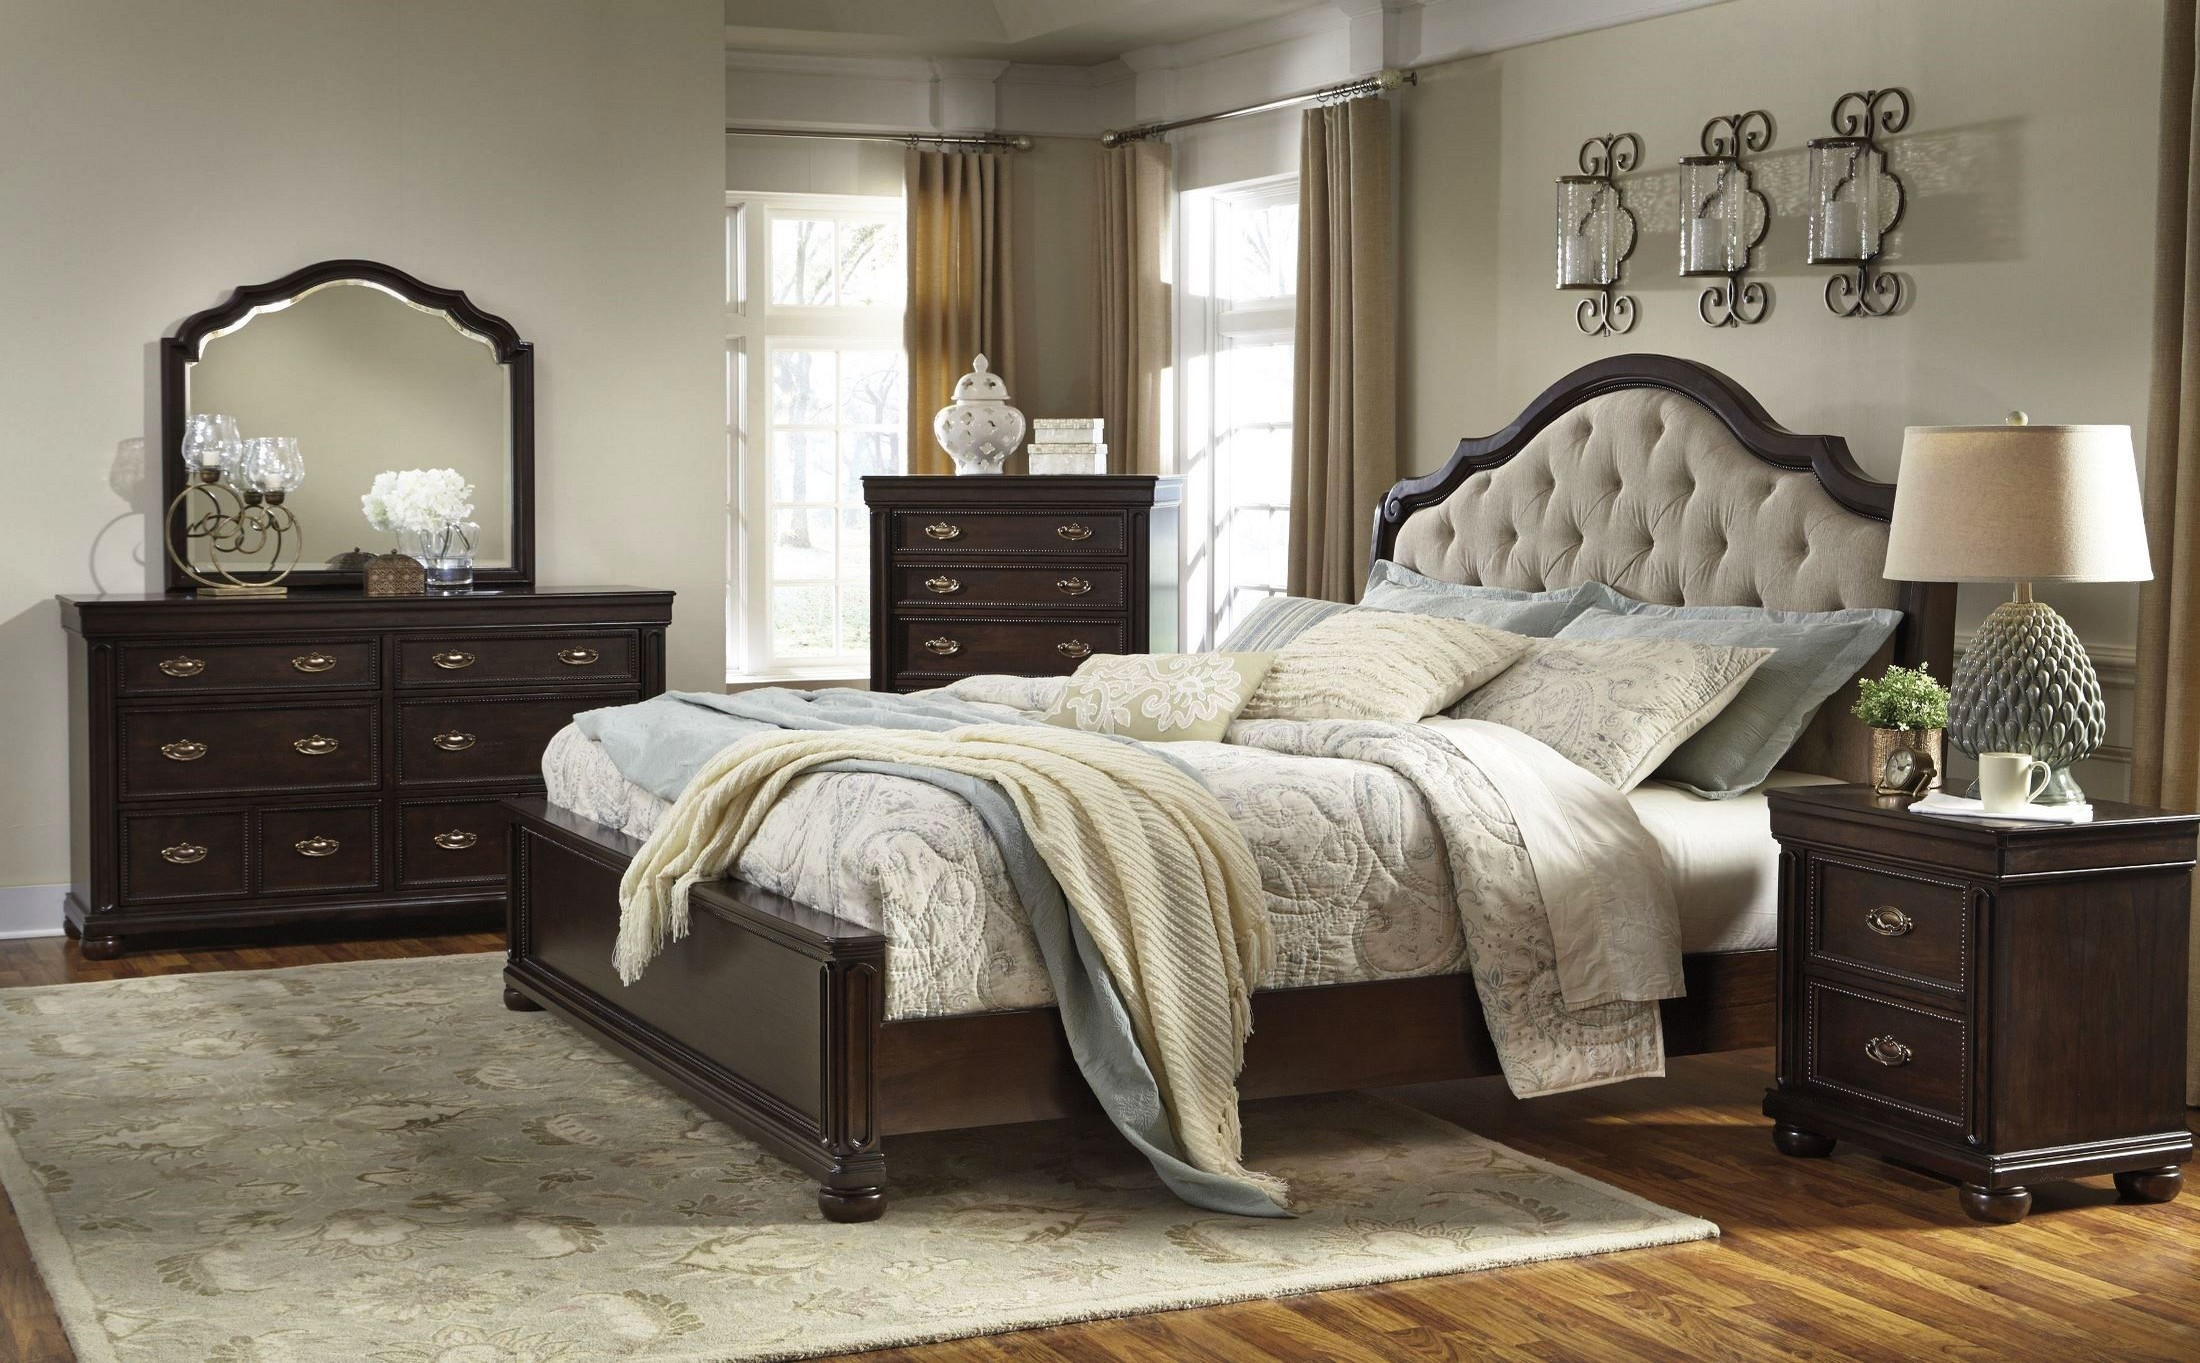 moluxy dark brown upholstered sleigh bedroom set b596 54 57 96